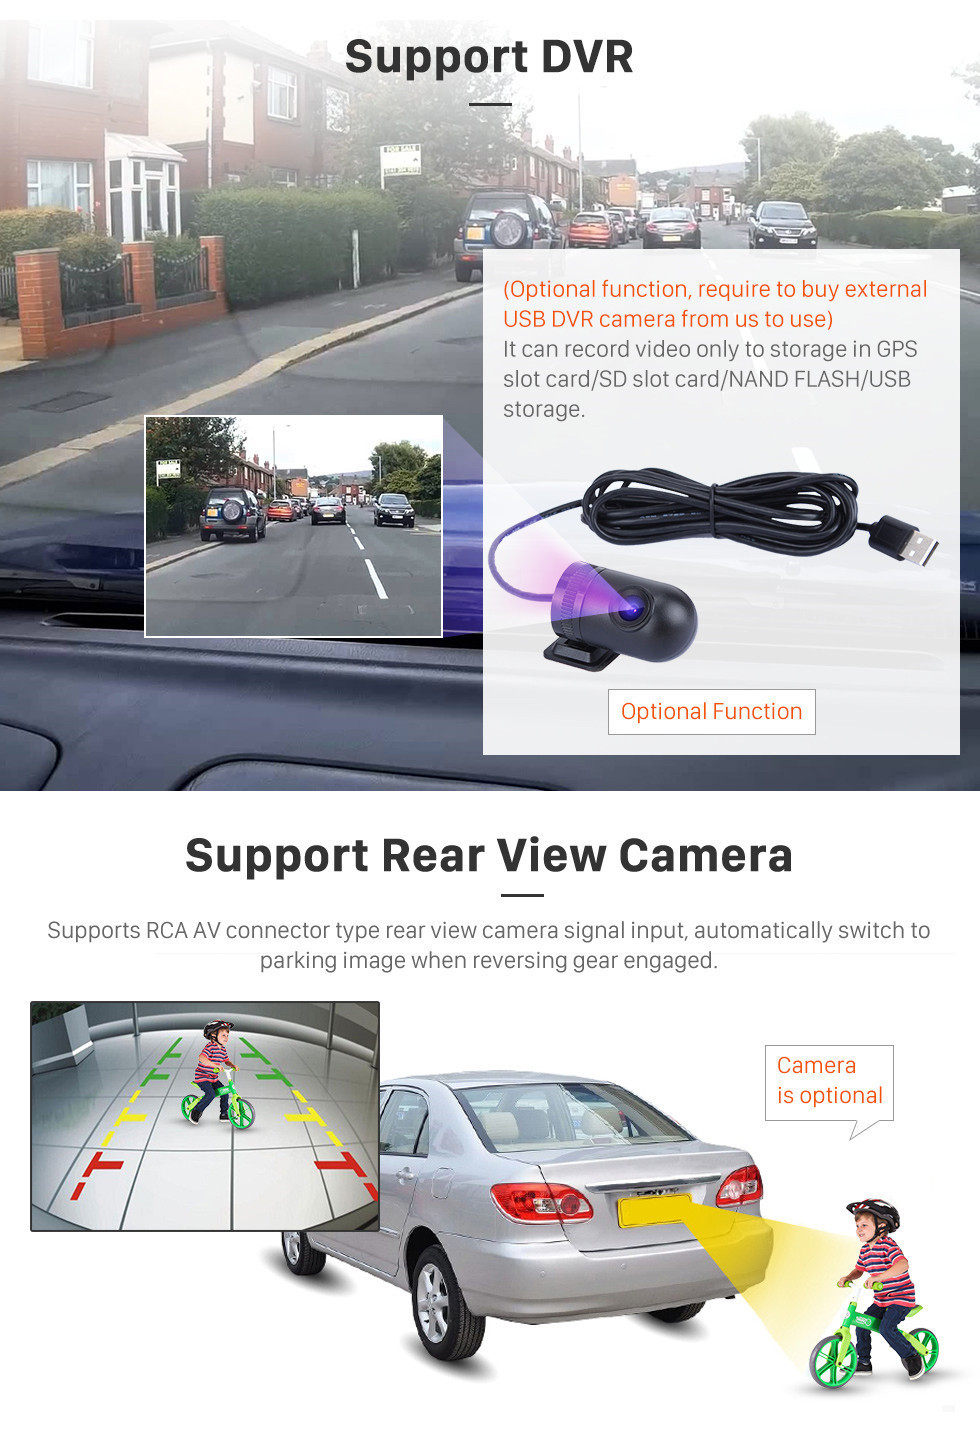 Seicane 9 inch Android 10.0 Radio DVD player navigation system for 2008-2012 KIA FORTE/CERATO(AT) with Bluetooth GPS HD 1024*600 touch screen OBD2 DVR Rearview camera TV 1080P Video 3G WIFI Steering Wheel Control USB Mirror link